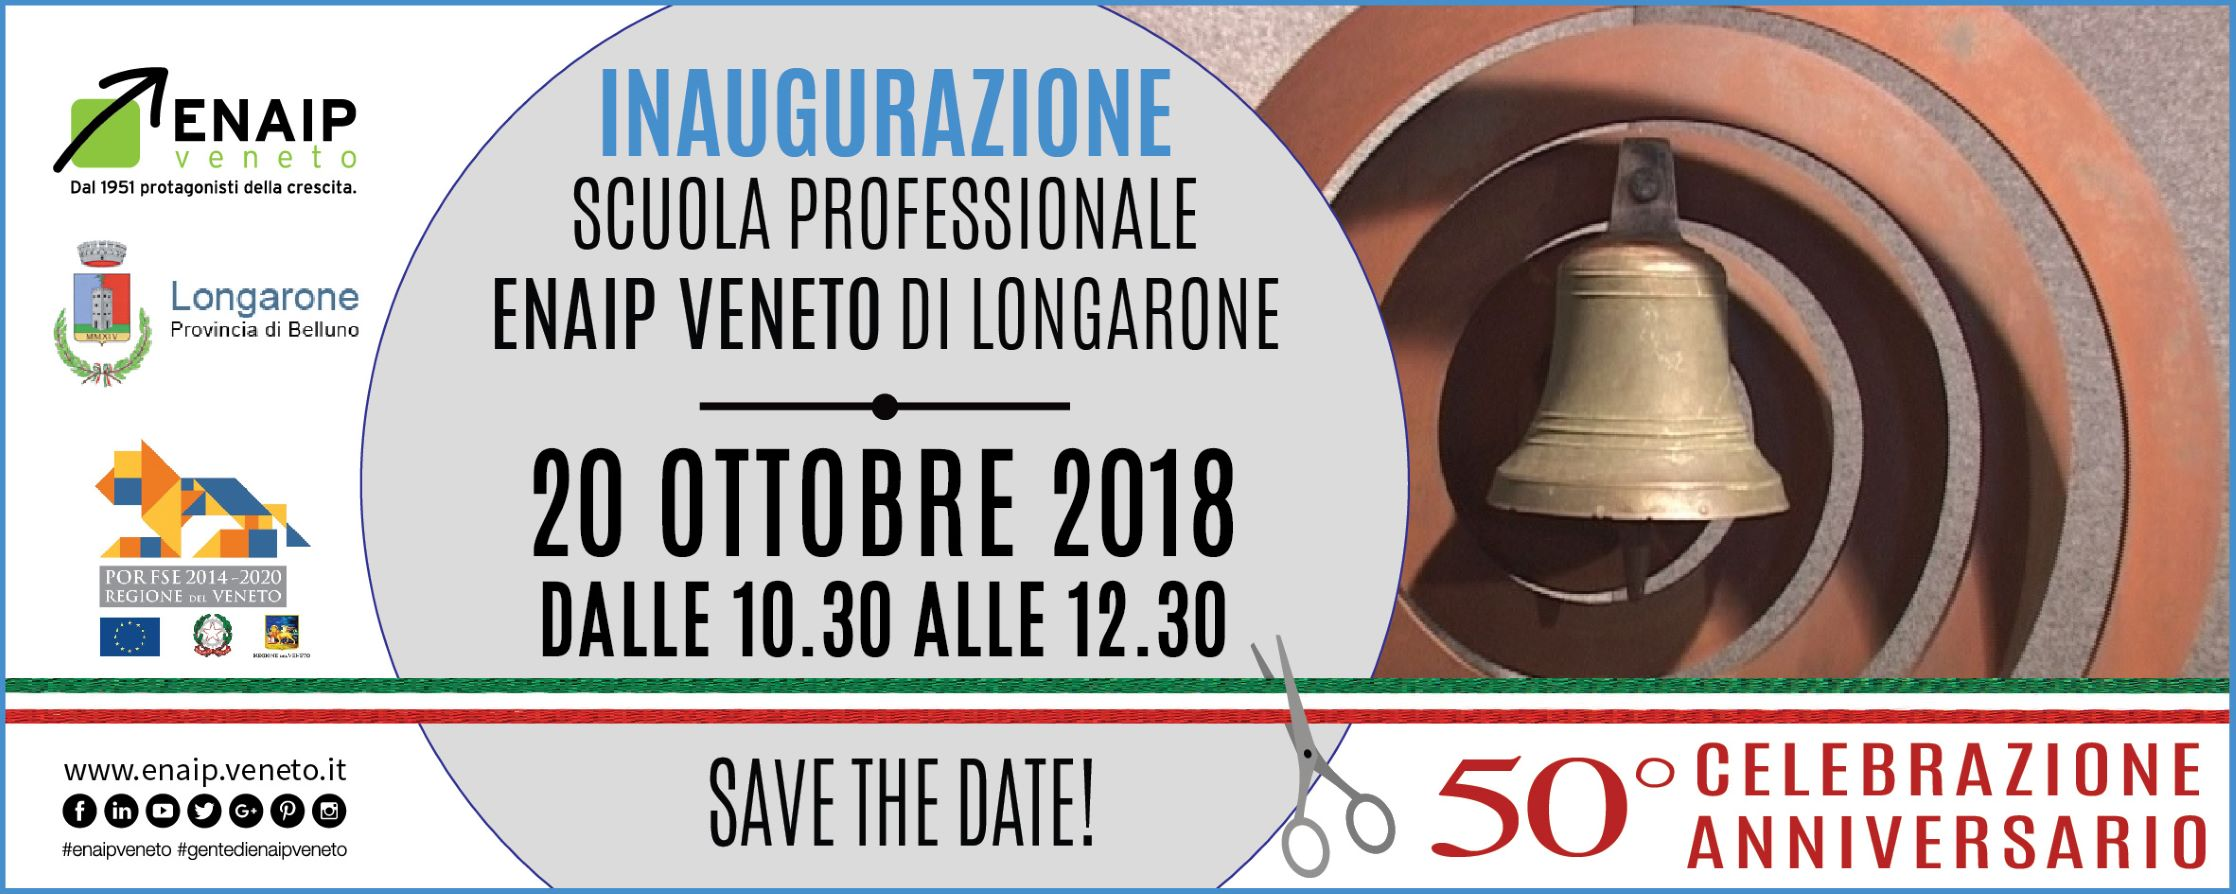 Invito Longarone3 web